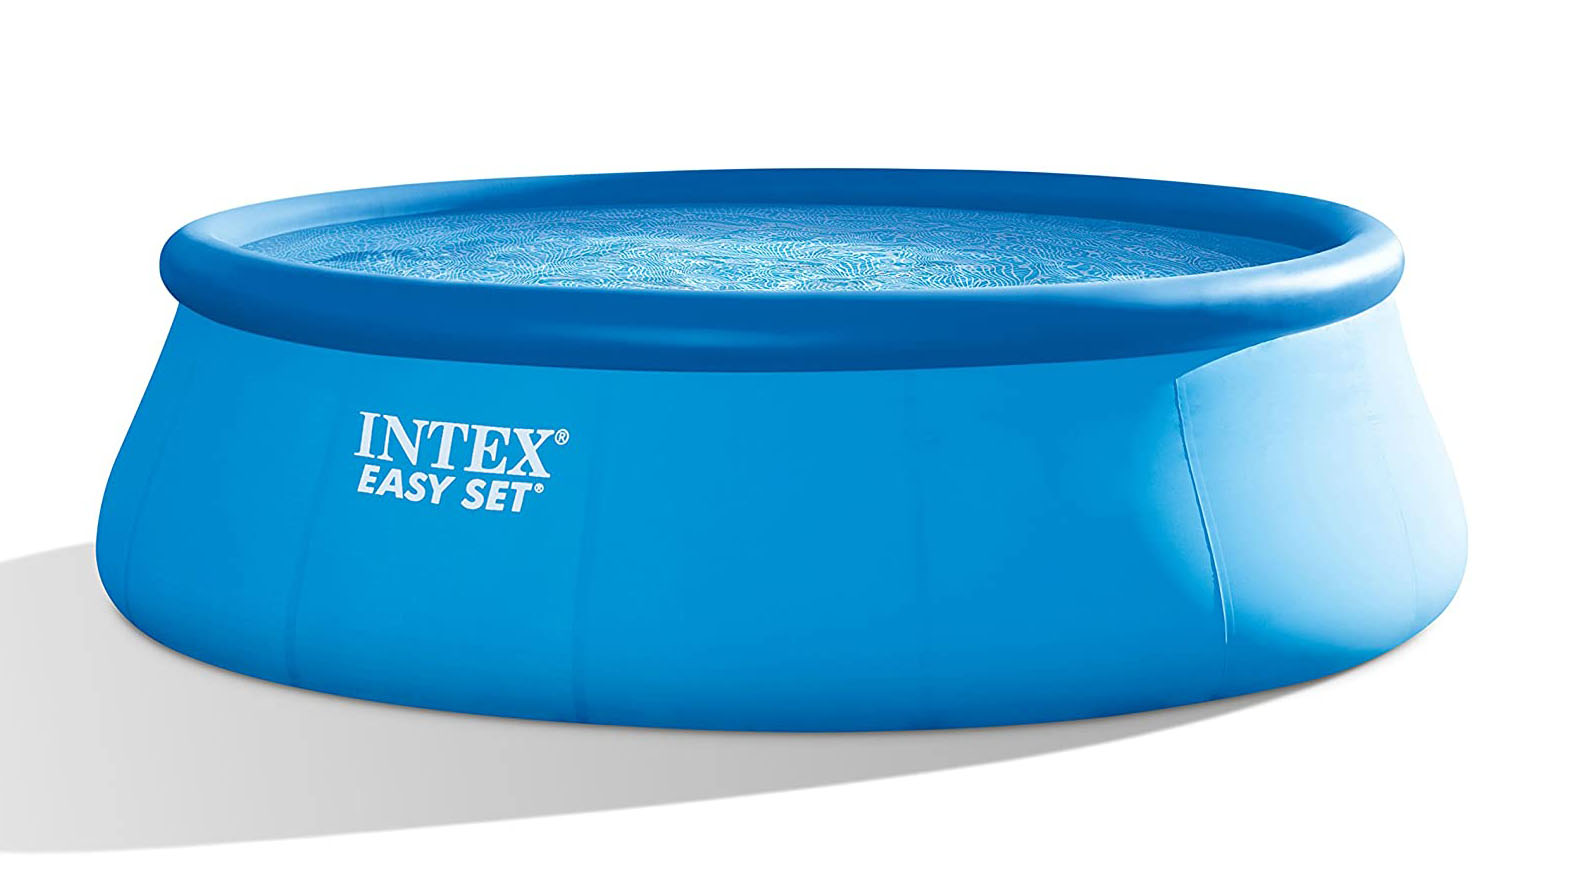 intex easy set above ground pool for adults